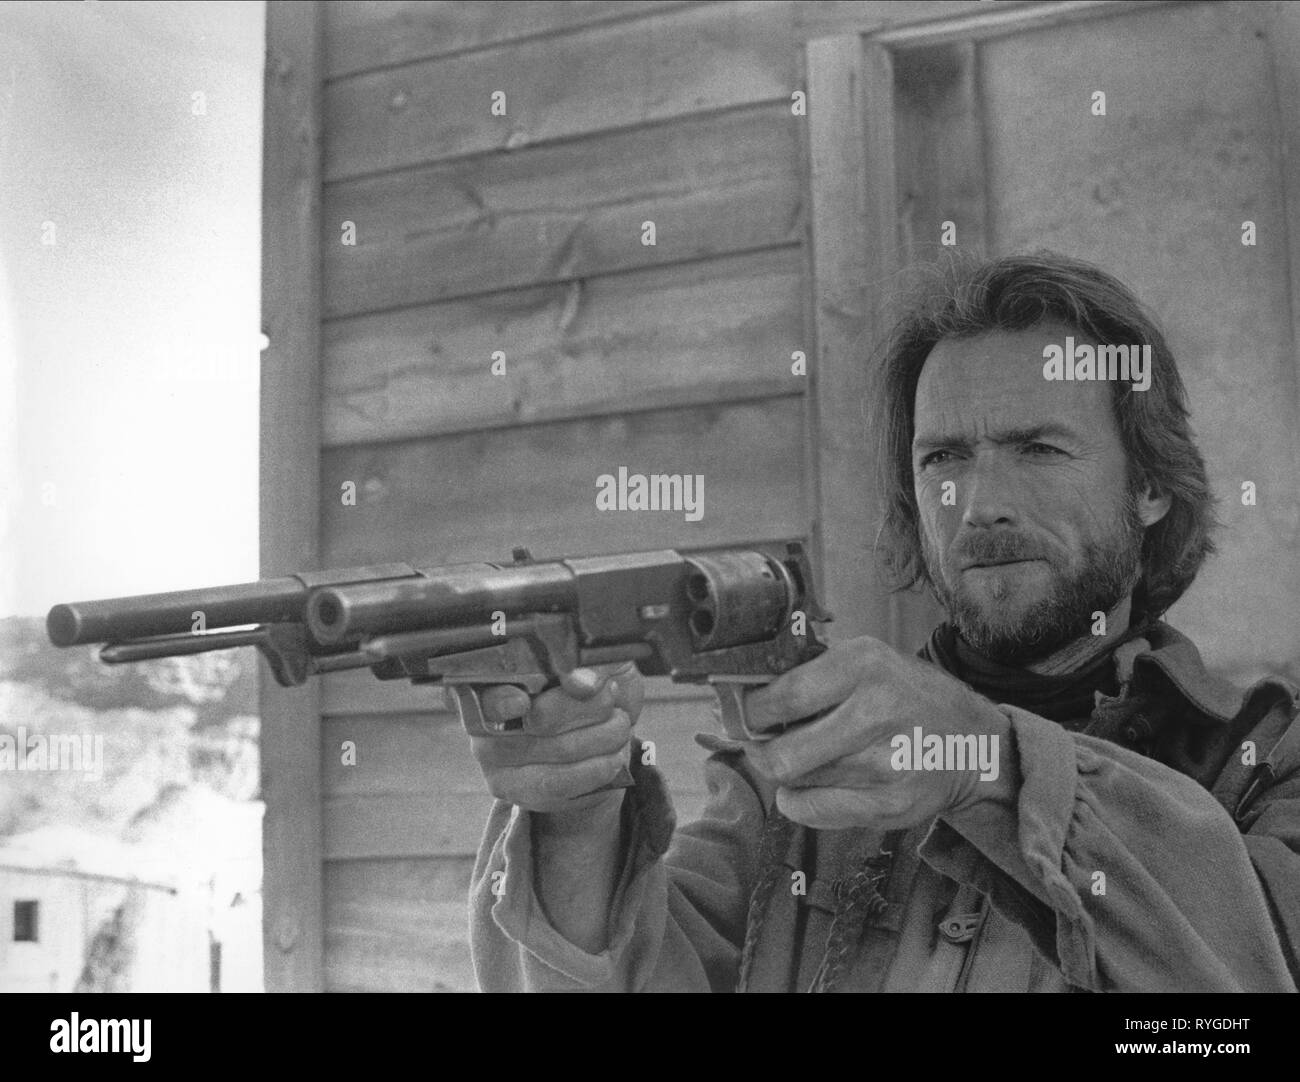 CLINT EASTWOOD, THE OUTLAW JOSEY WALES, 1976 Stock Photo